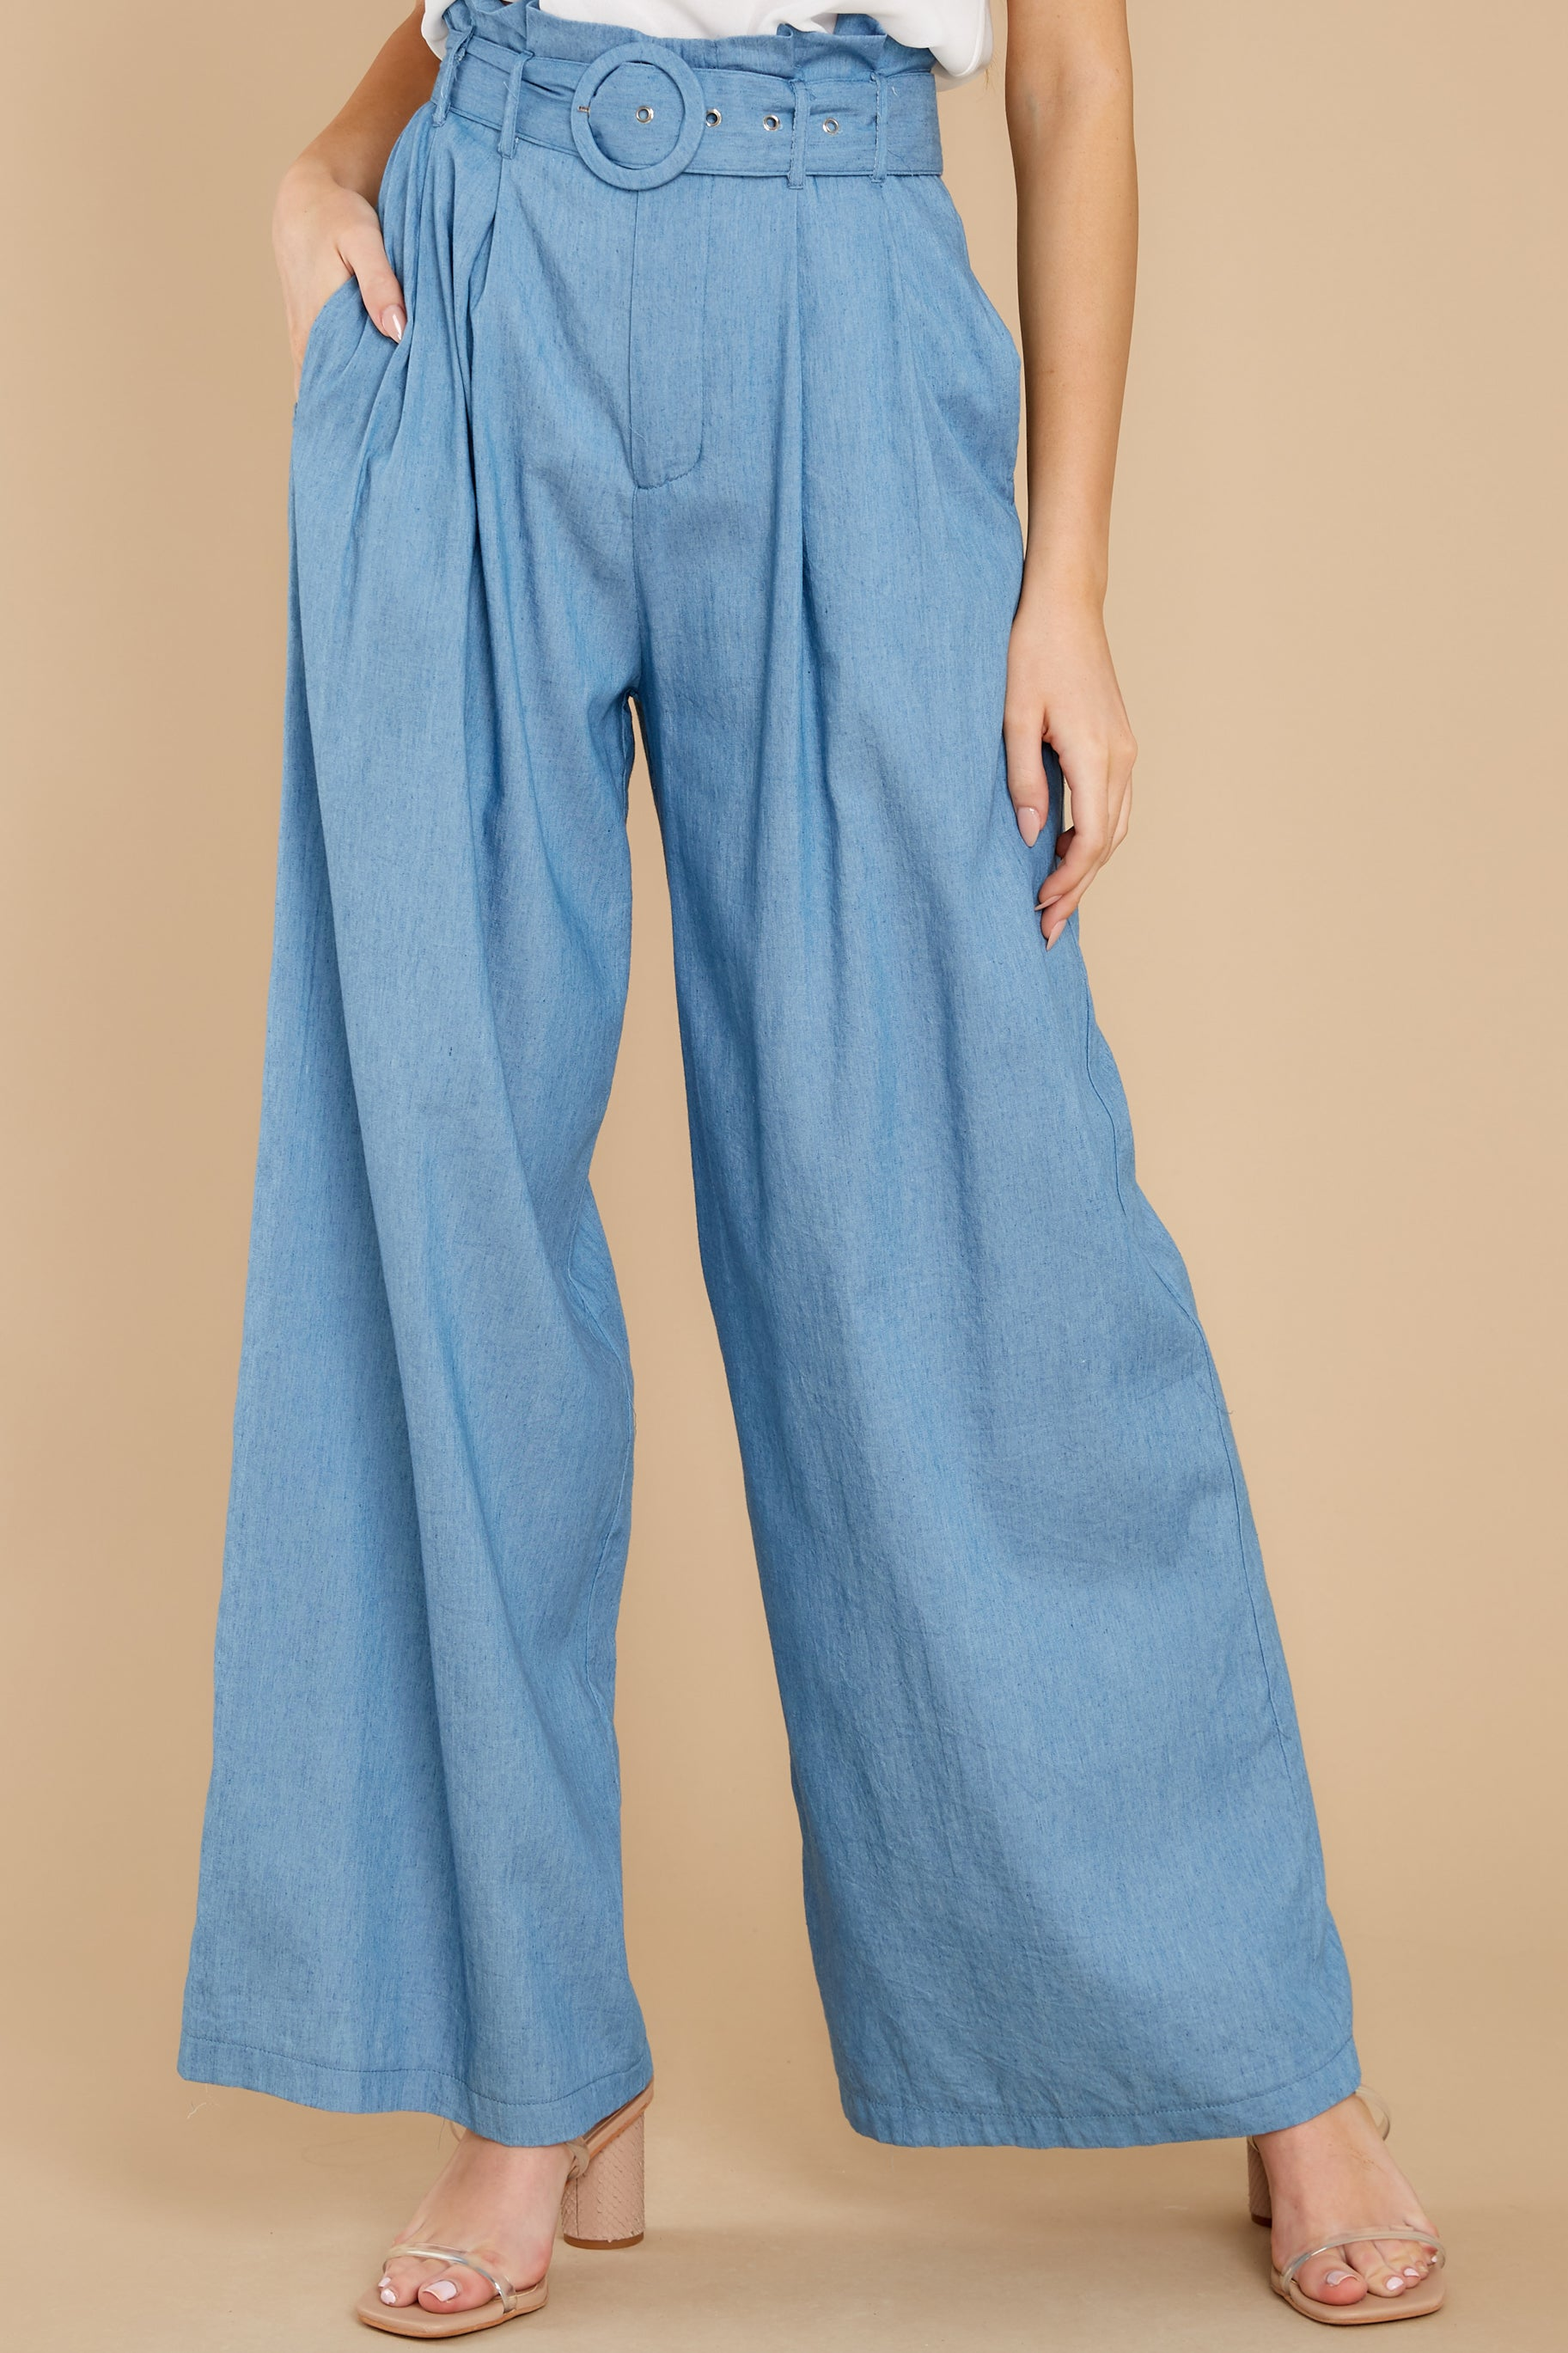 80s Jeans, Pants, Leggings Coming On Strong Chambray Pants Blue $42.00 AT vintagedancer.com